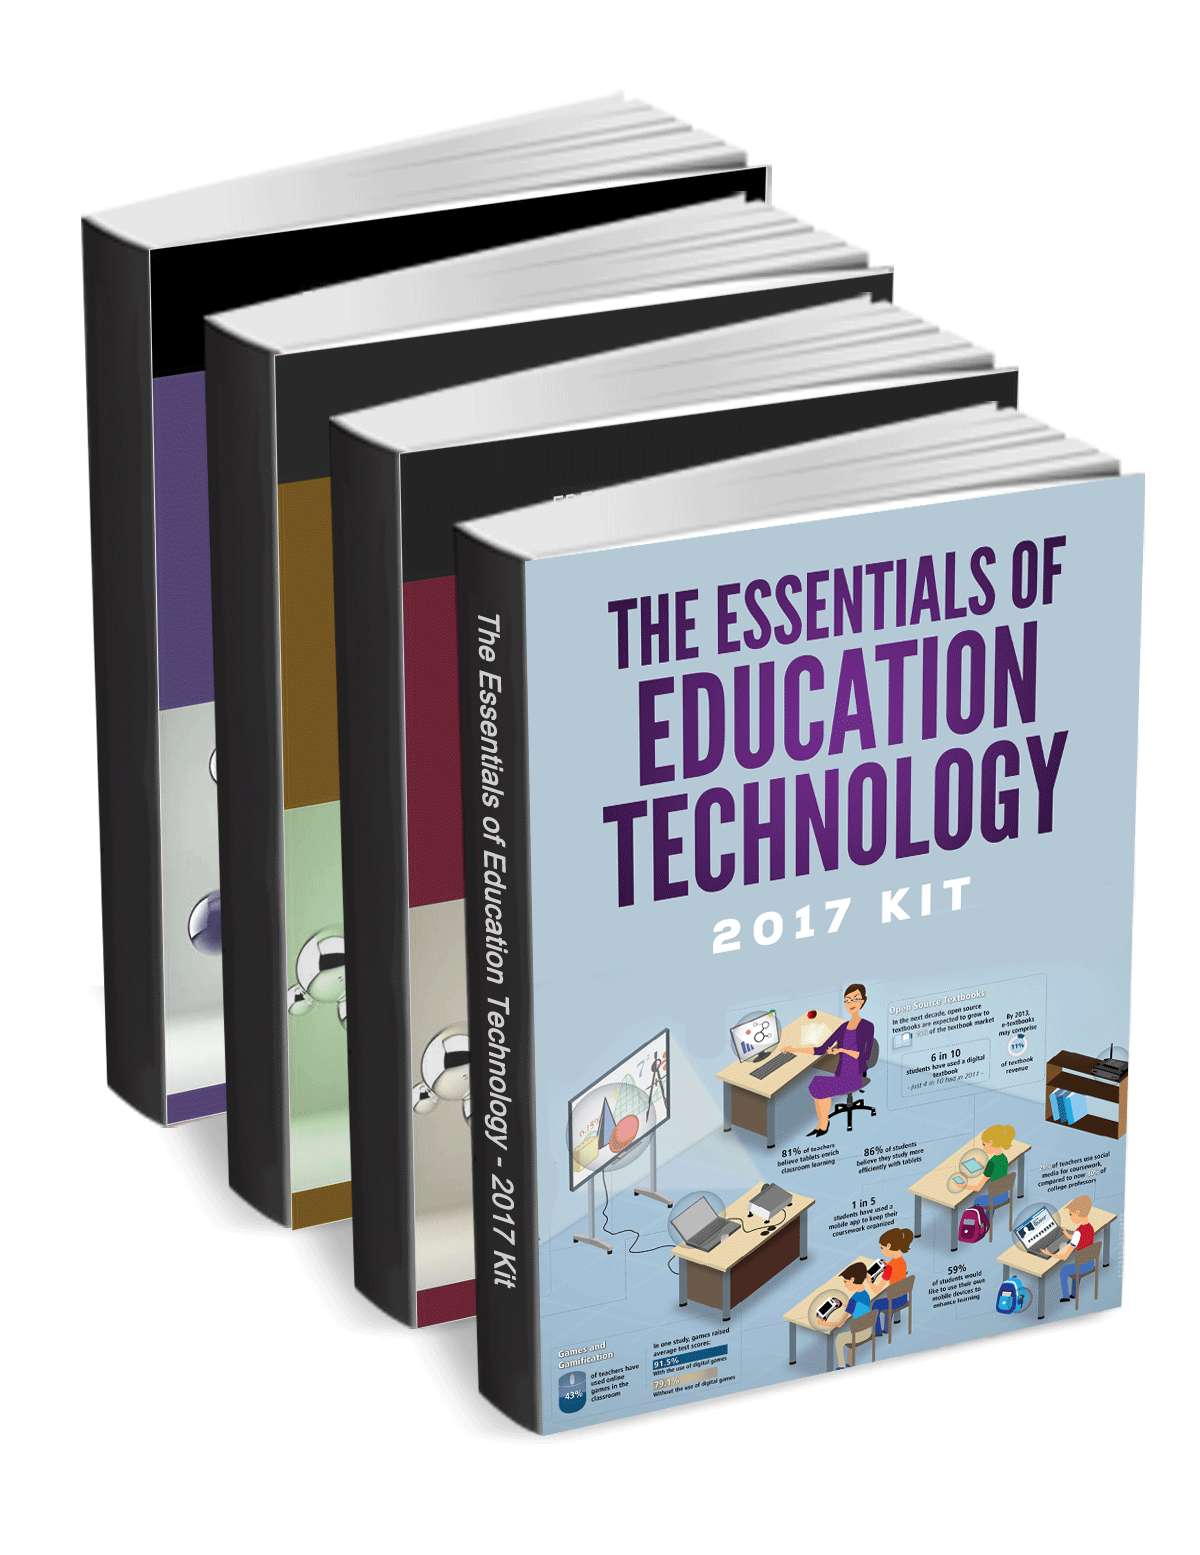 The Essentials of Education Technology - 2017 Kit